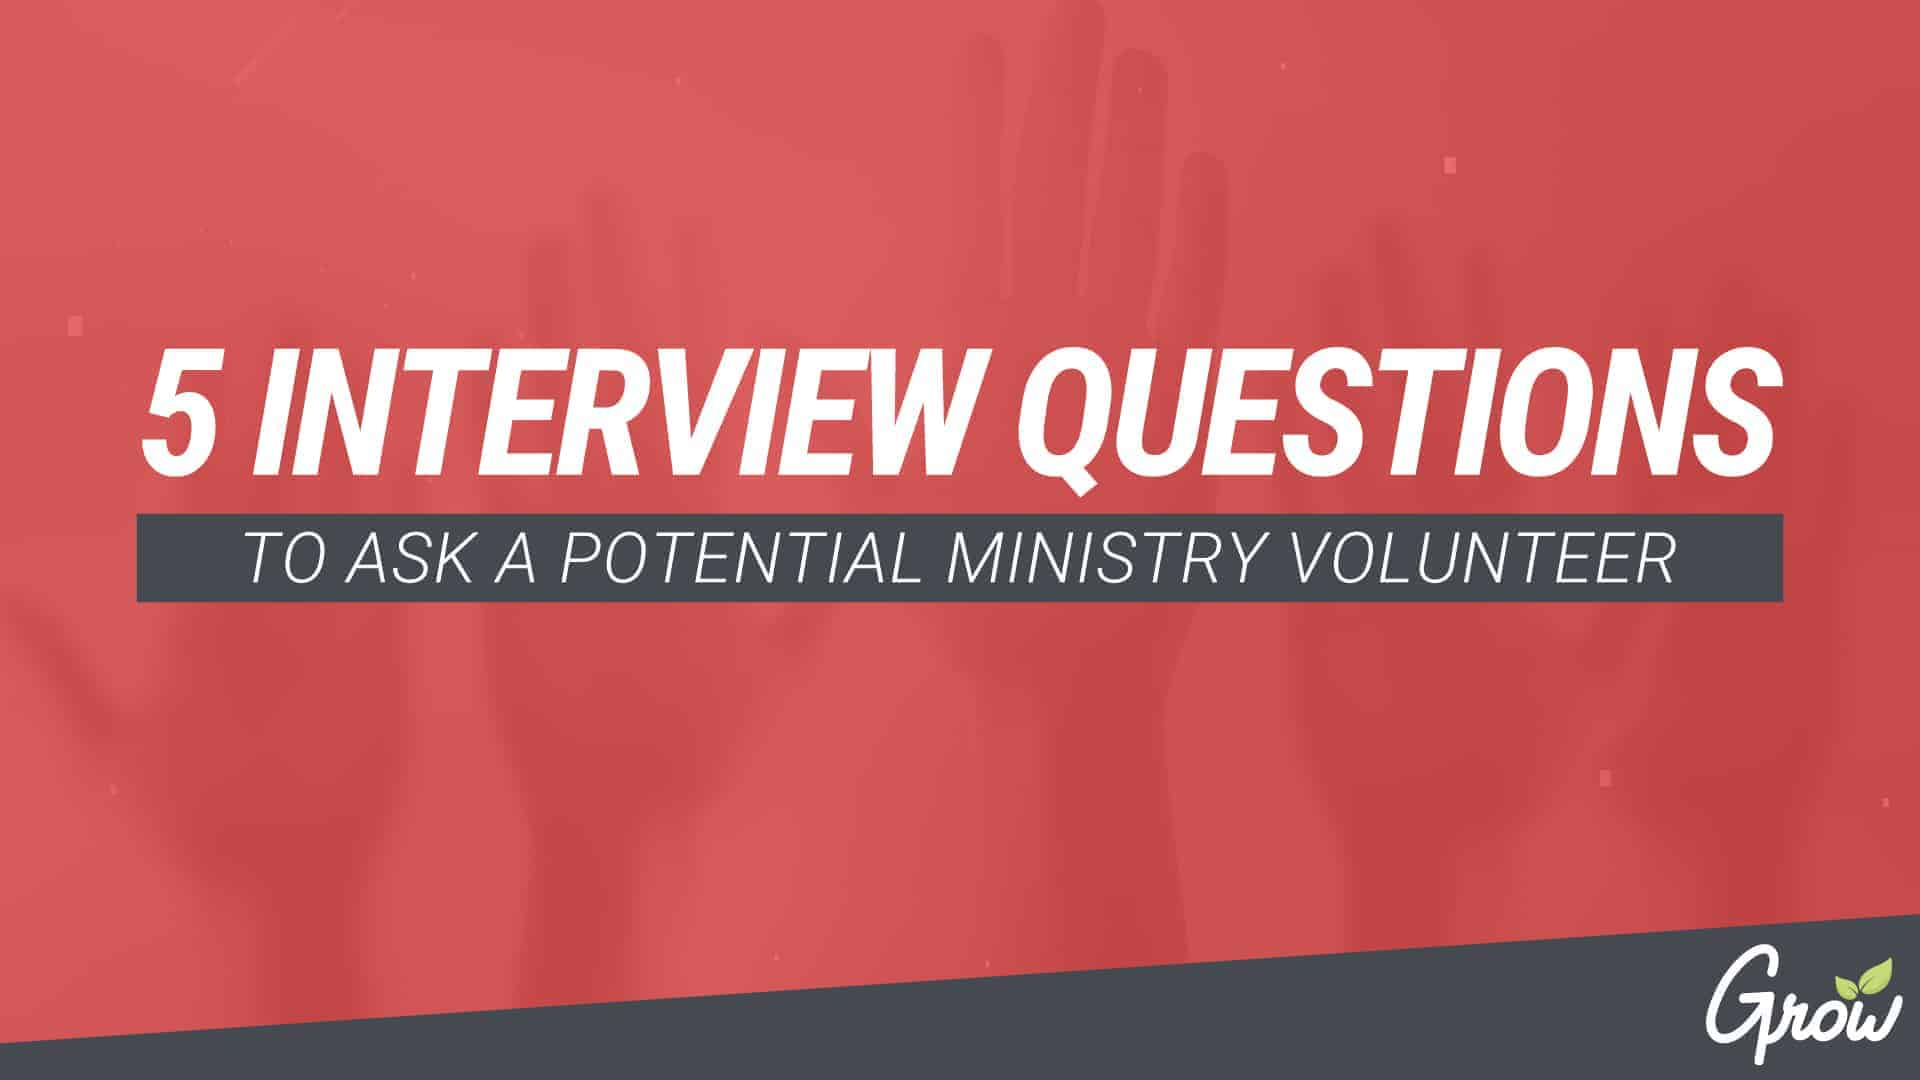 5 INTERVIEW QUESTIONS TO ASK A POTENTIAL MINISTRY VOLUNTEER